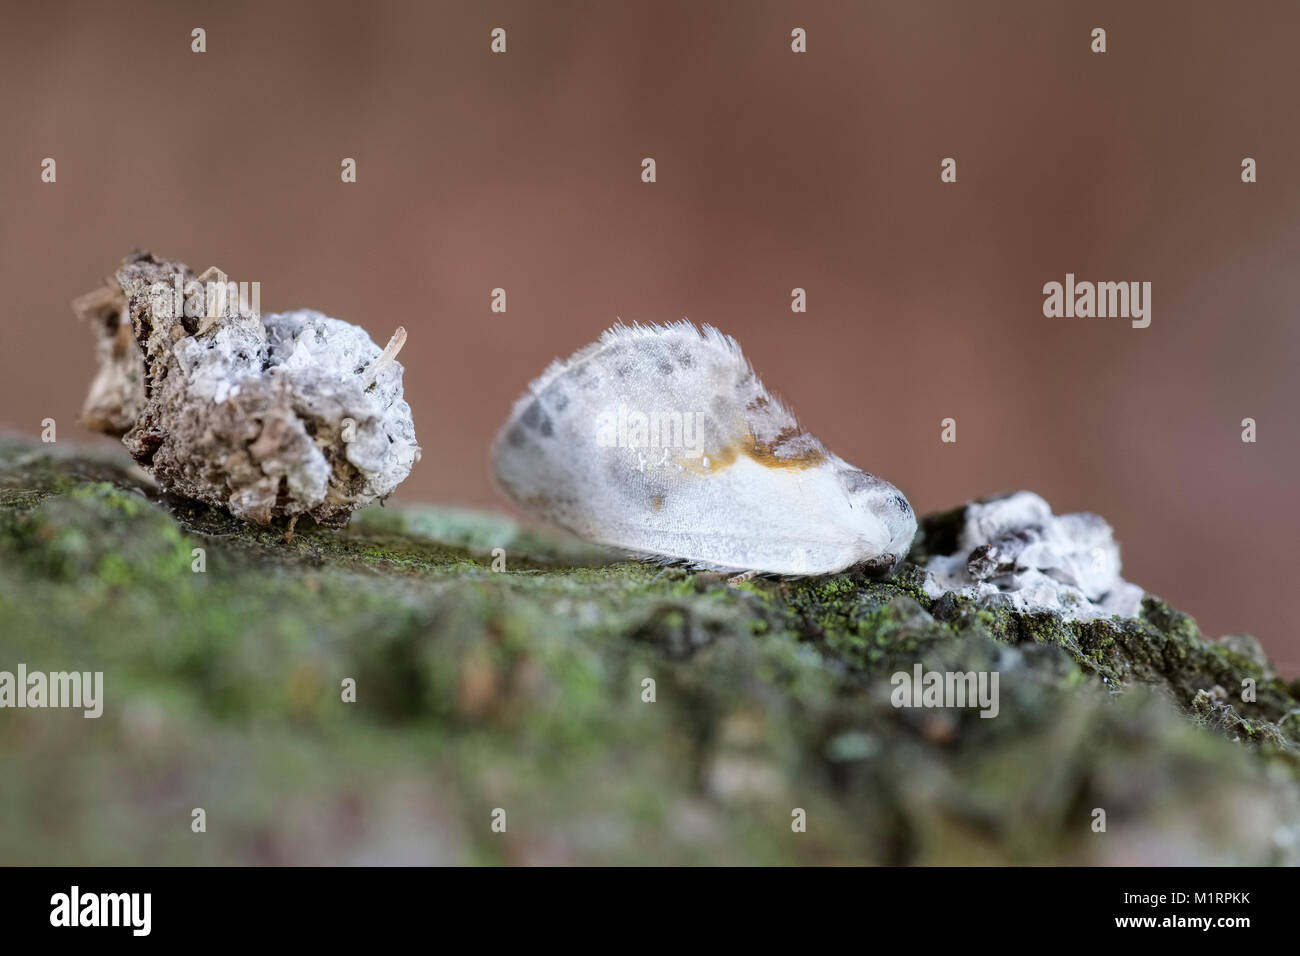 Chinese character moth resting next to bird droppings showing  camouflage or mimicry - Cilix glaucata - Stock Image